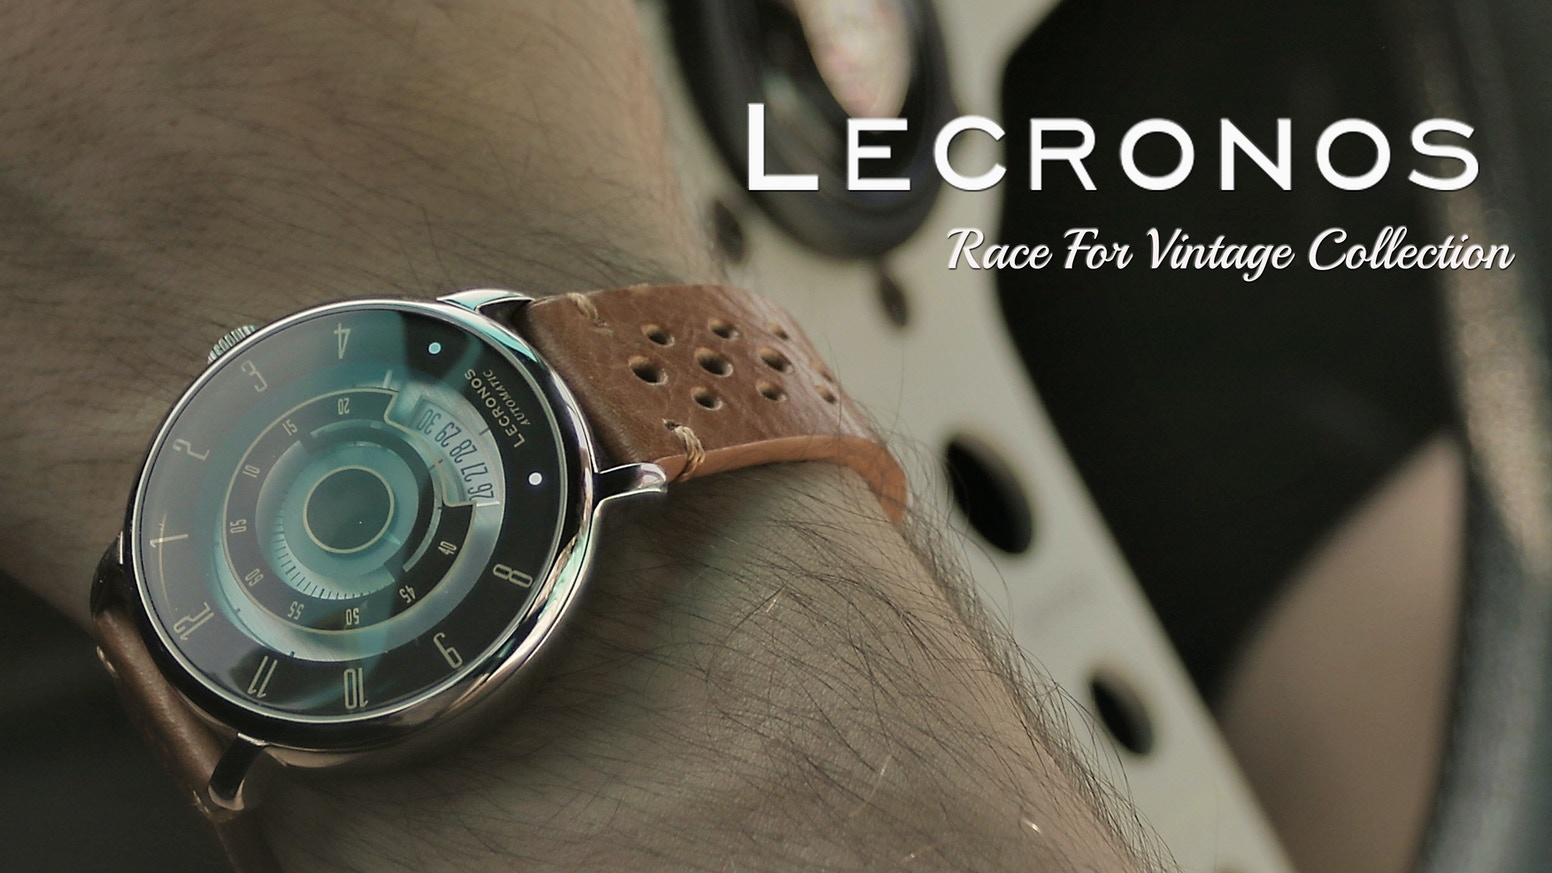 US$149 Japan Automatic Vintage Racing Design Watches by LENVINO ...